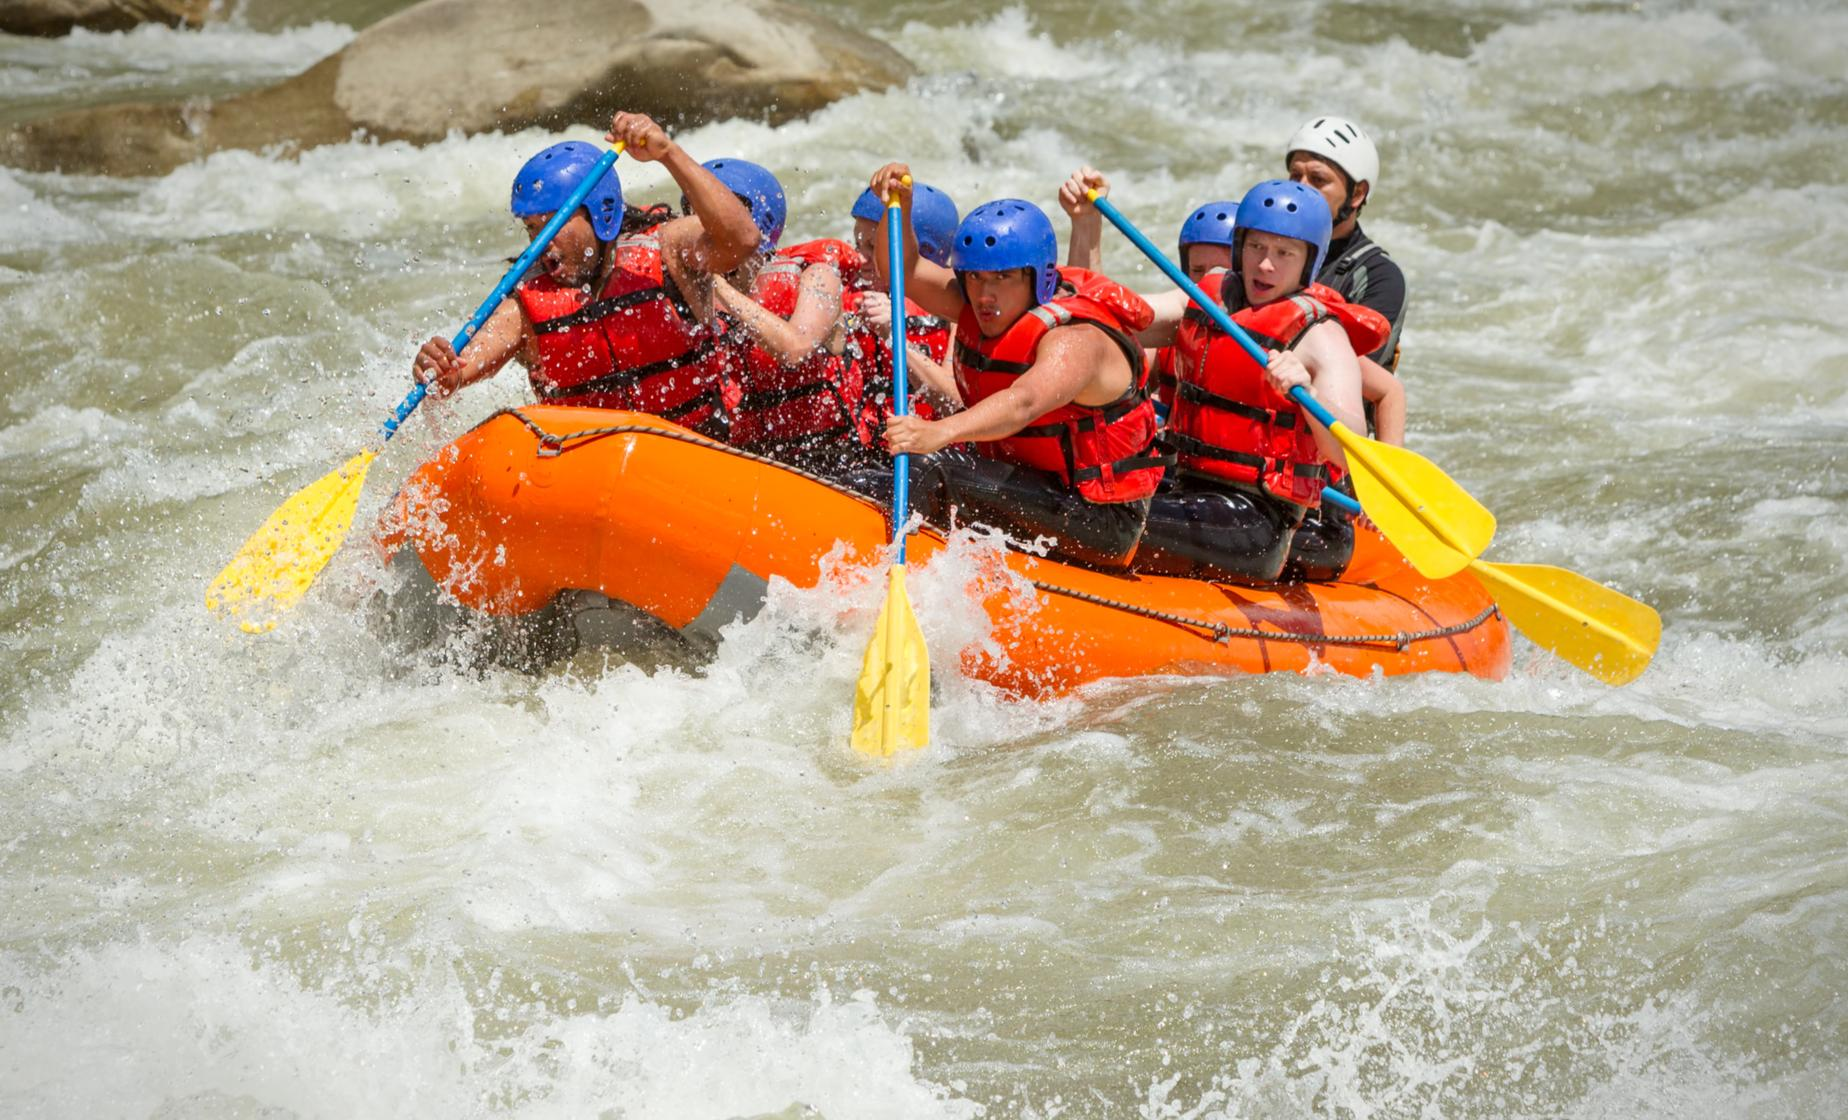 Rafting Adventure on the River Tara